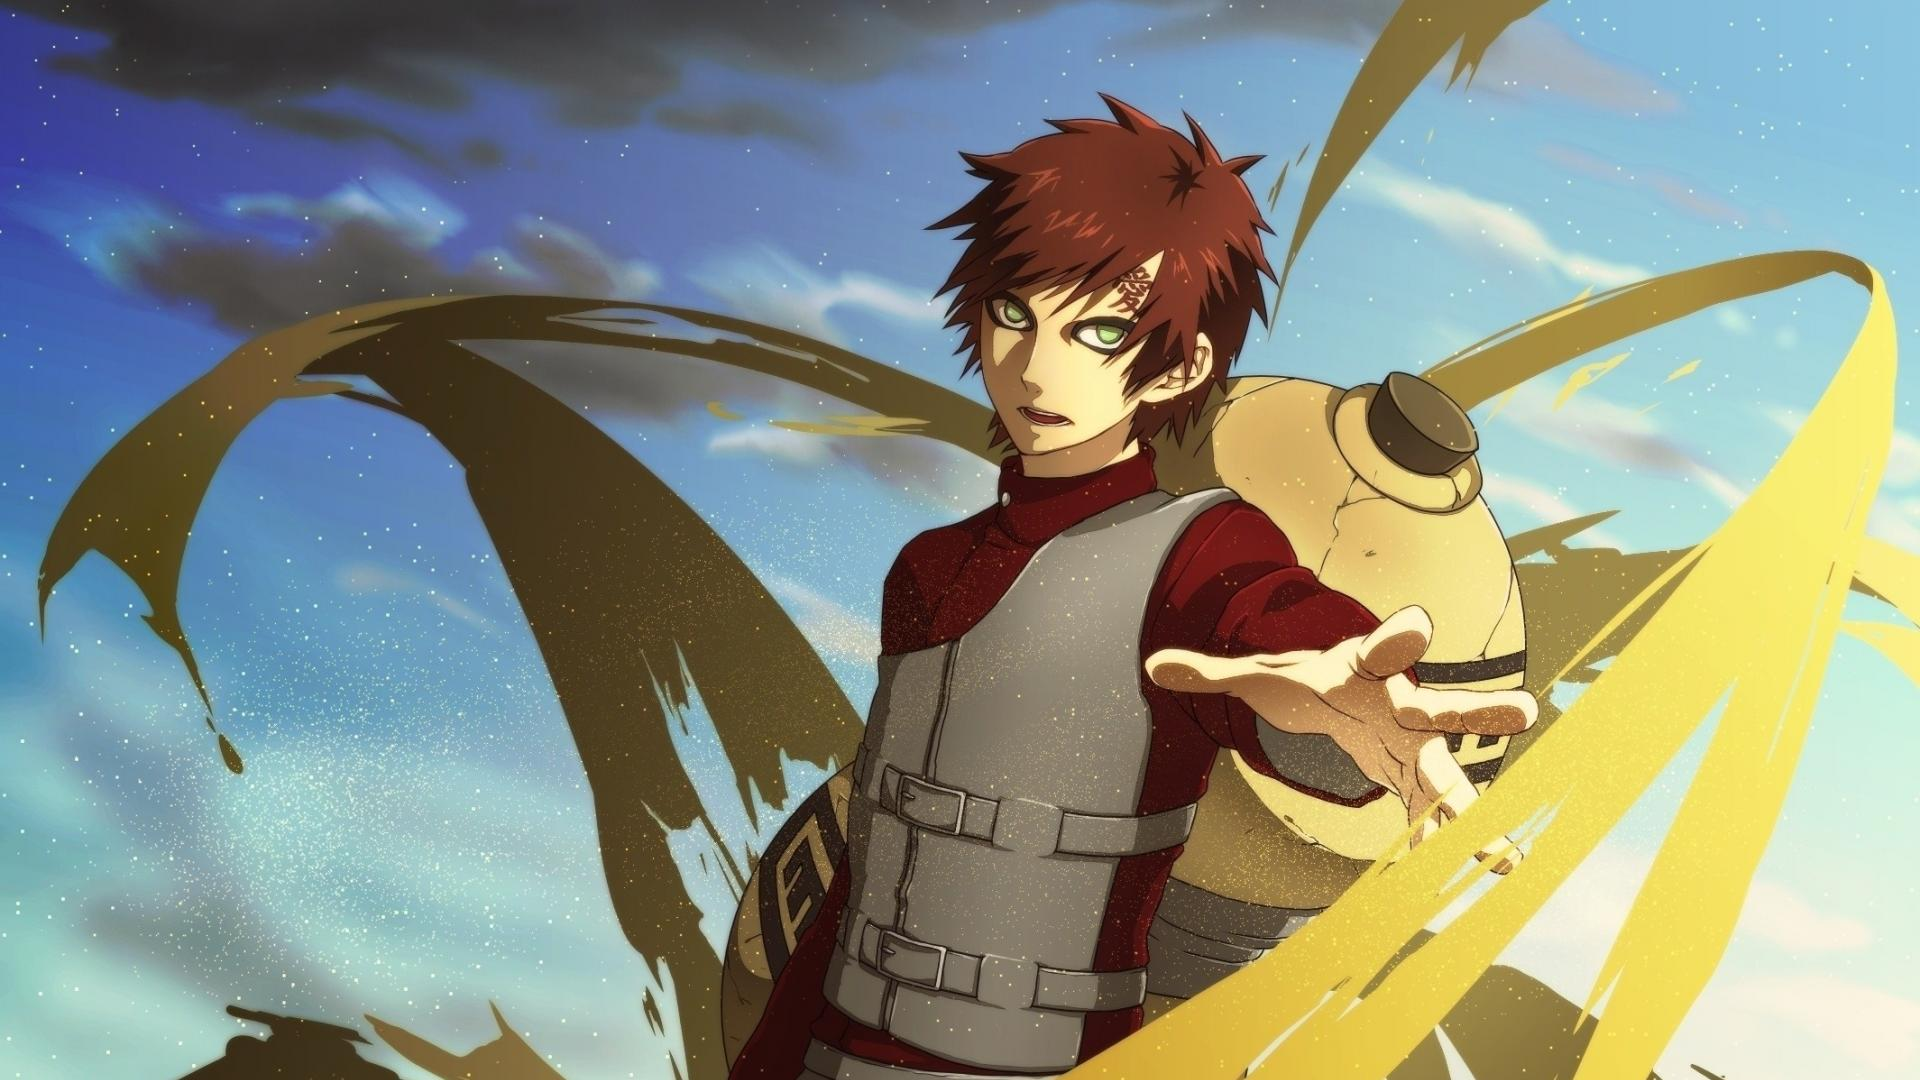 Sand naruto shippuden green eyes gaara wallpaper 39575 1920x1080